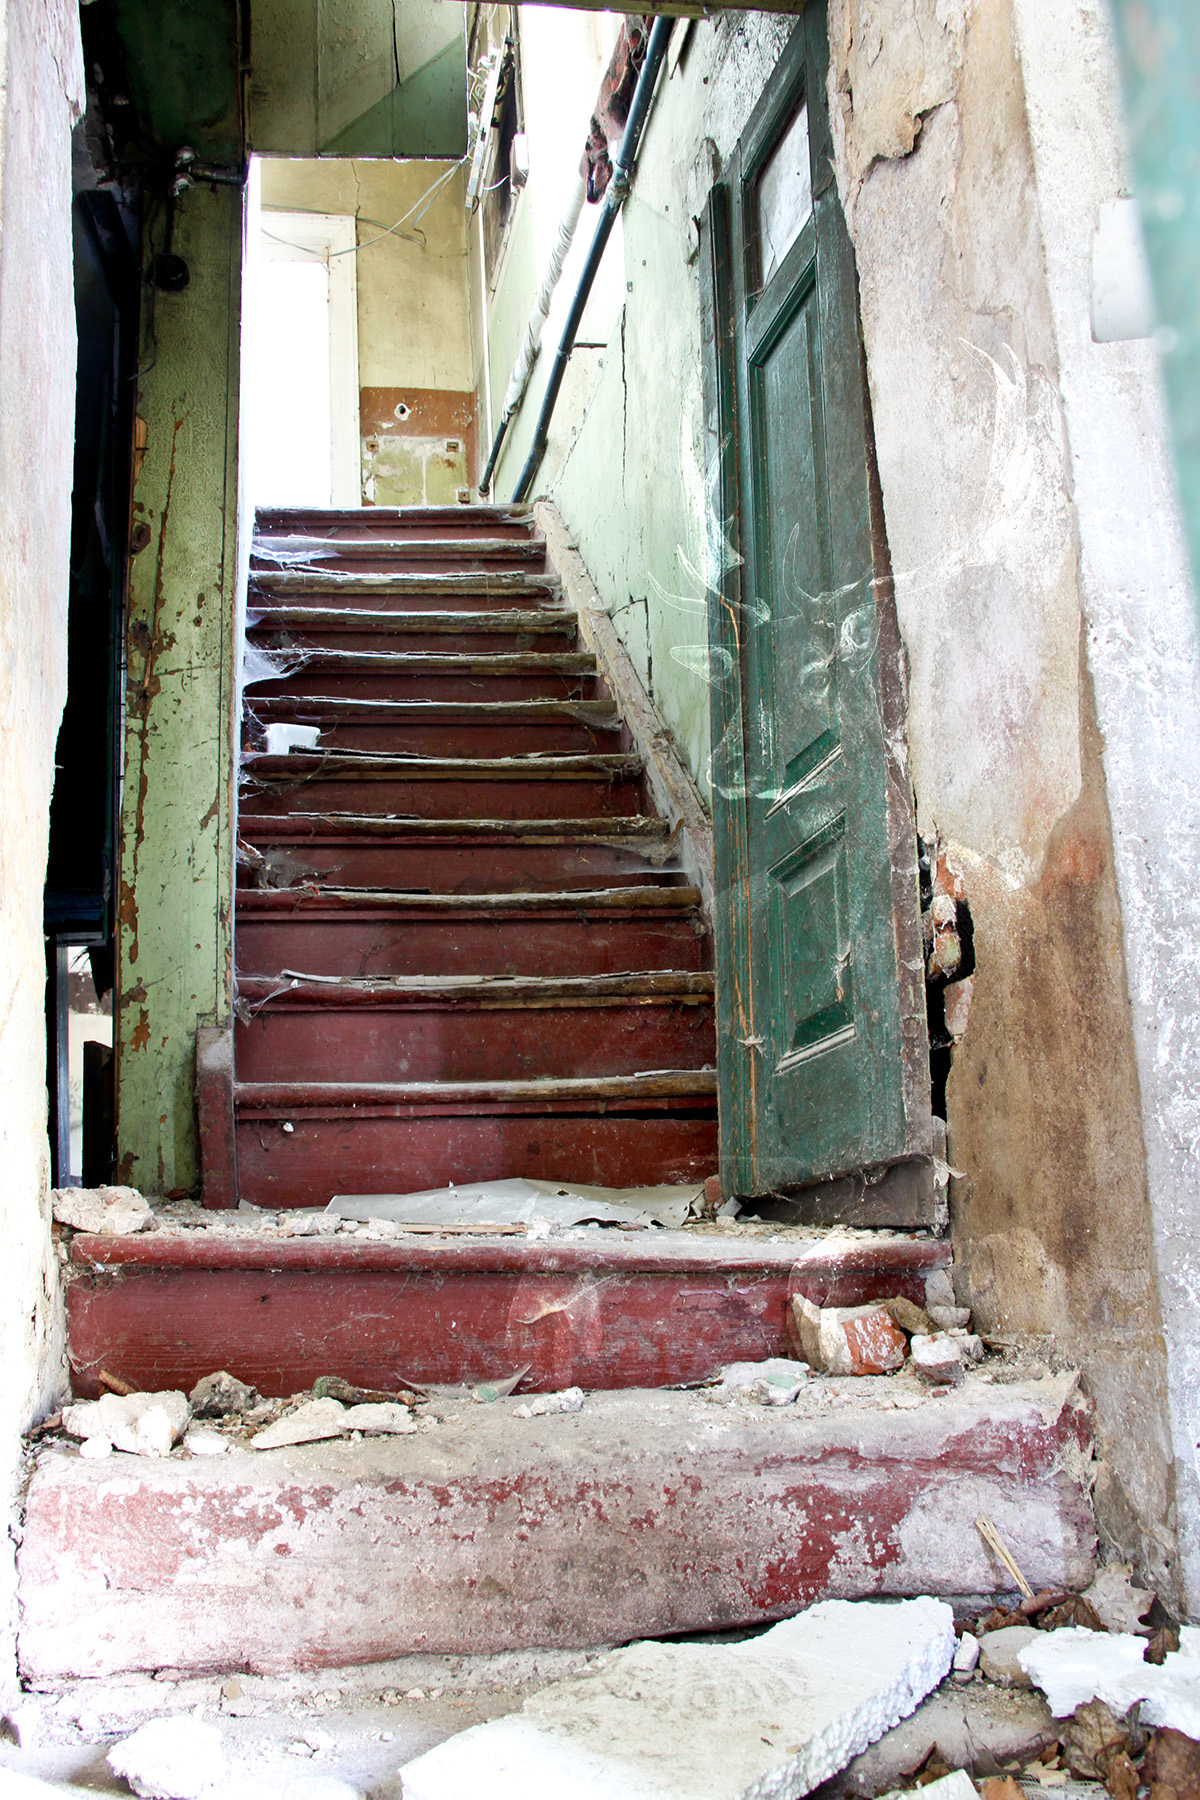 MWD 1; Contest; Stairway; Old House